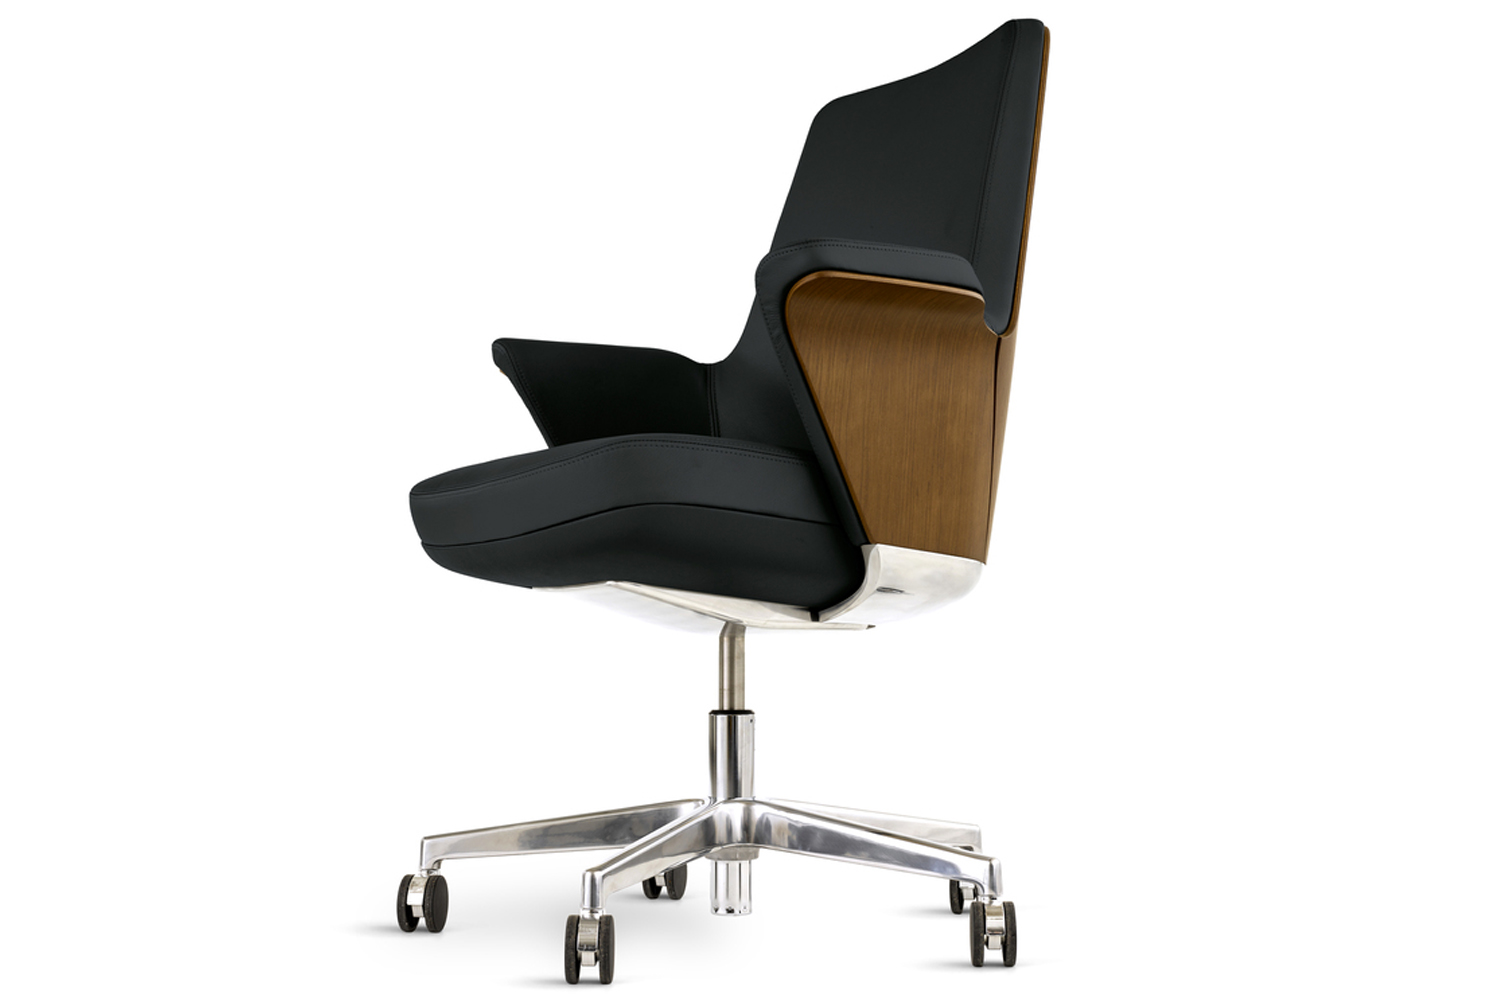 Unlike most chairs that have exposed levers for adjusting height, recline and tension, Summa's height-adjustment lever is integrated into the seat.